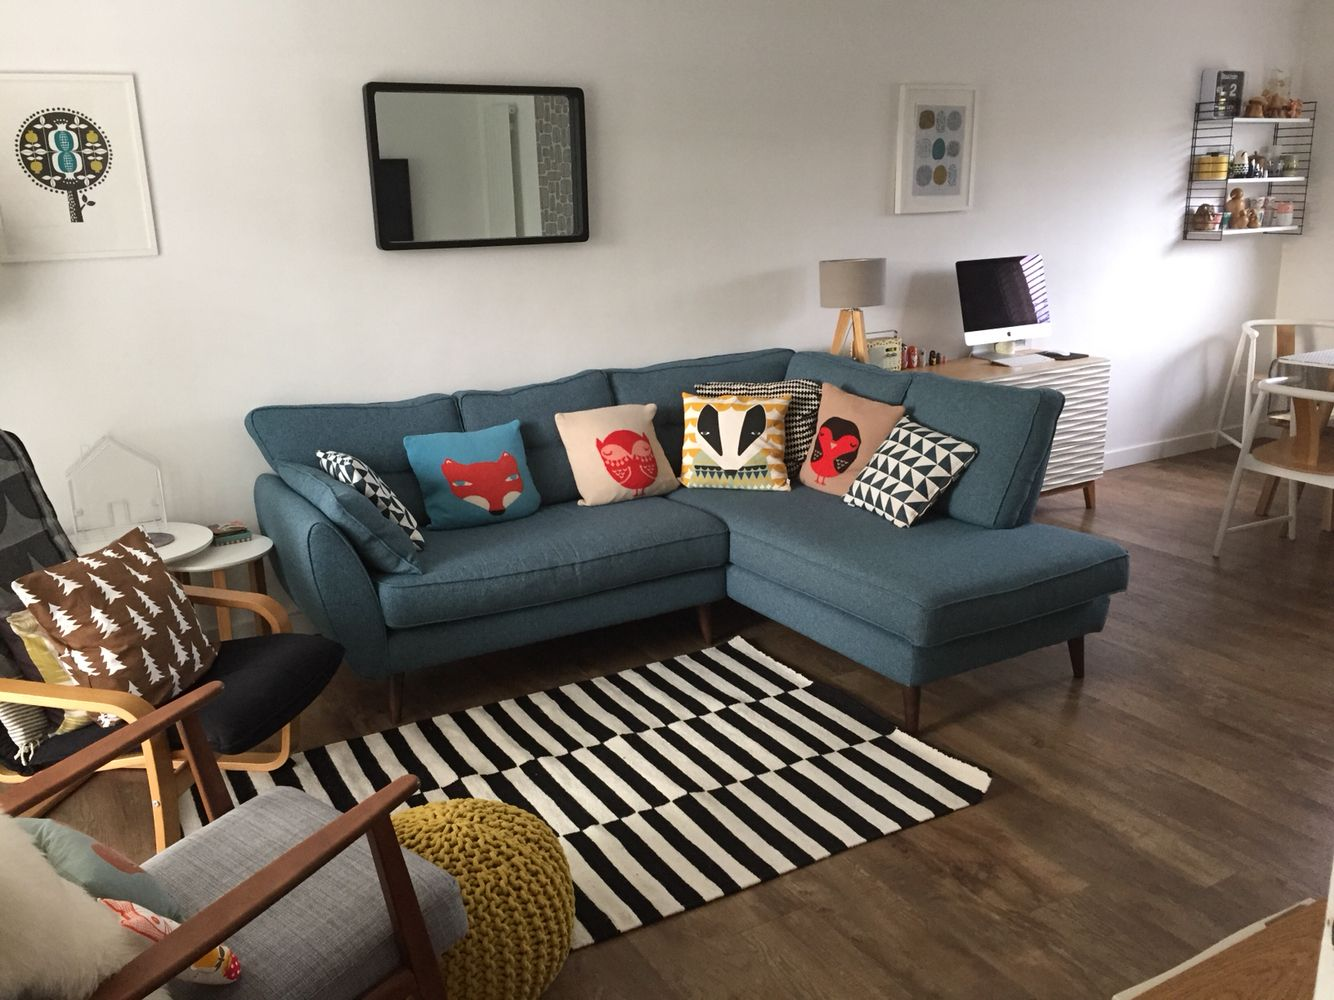 Living Room French Connection Zinc Sofa Donna Wilson Cushions Ikea Ekenaset Monochrome Rug La Redoute